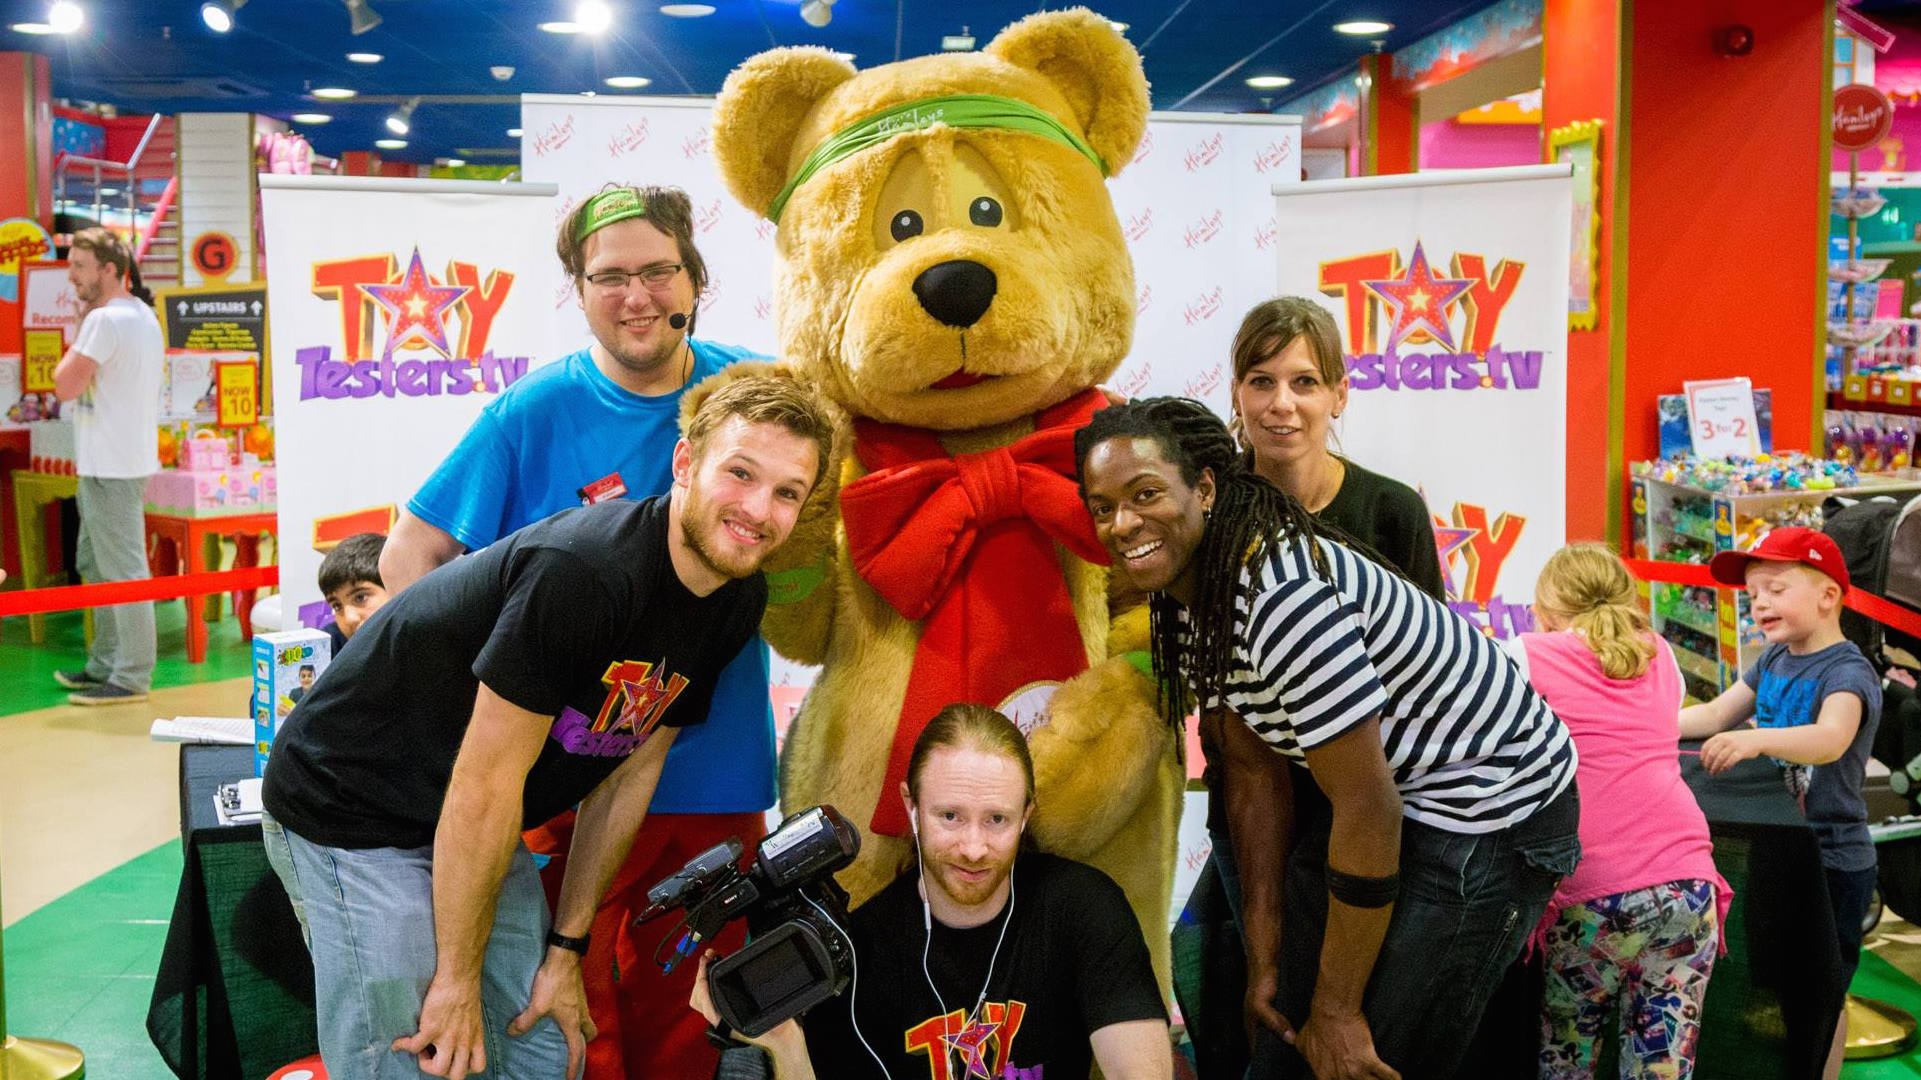 The Toytesters.tv tour team in Manchester 2015